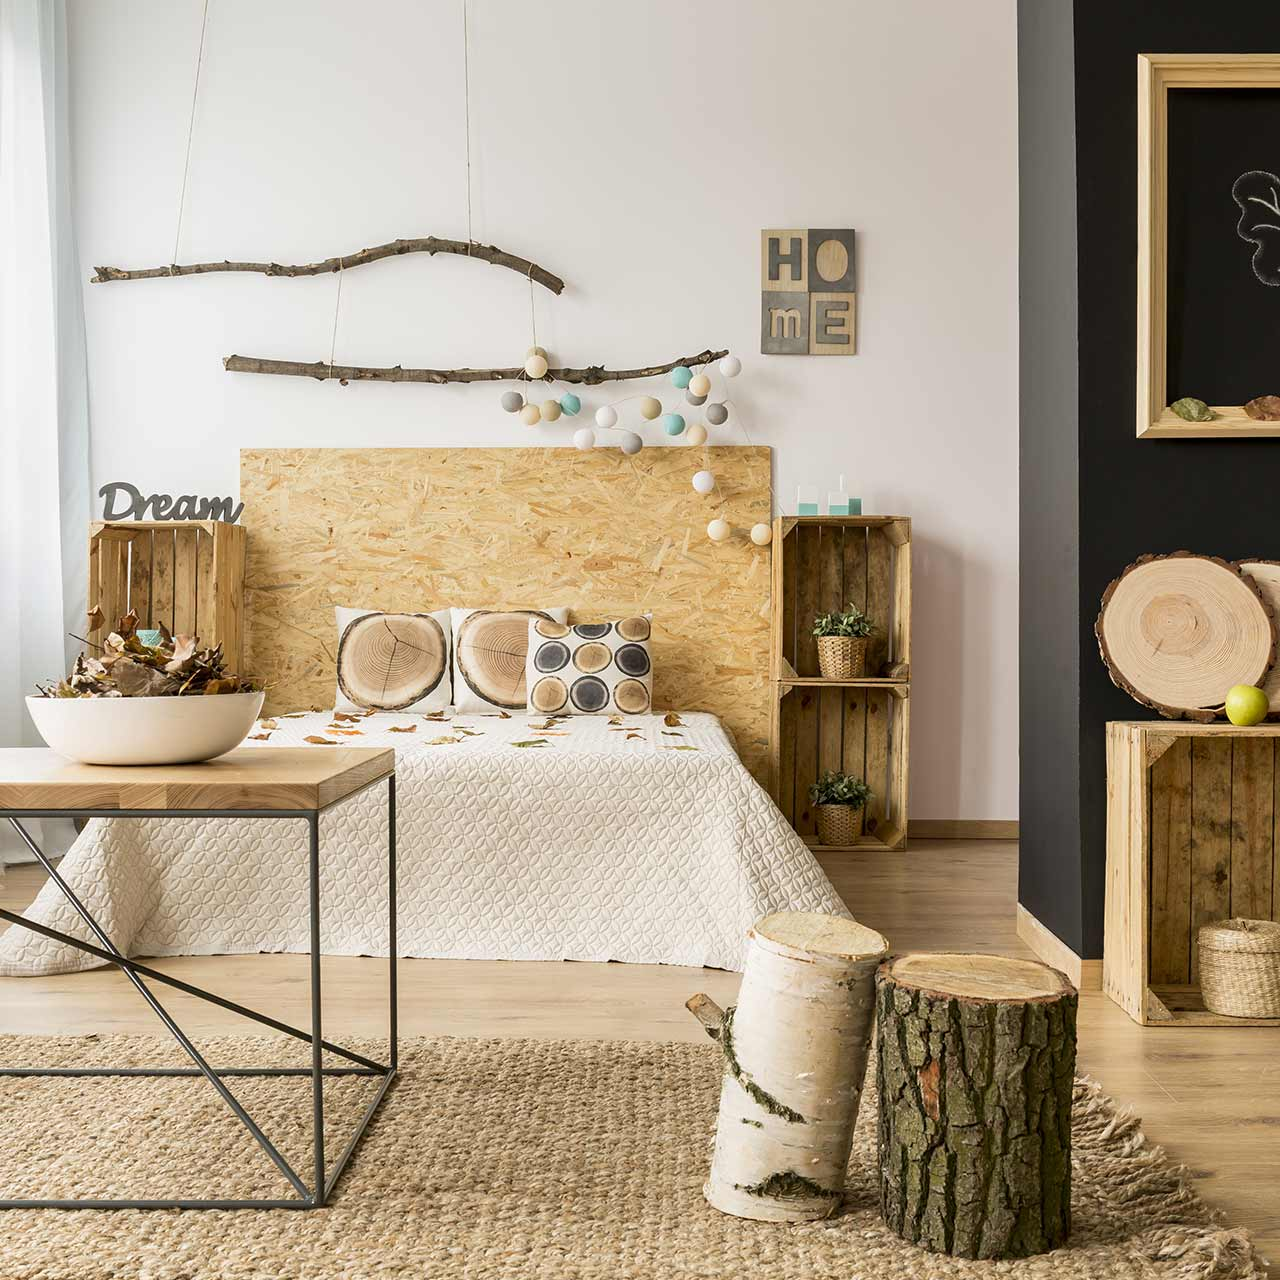 Rustic style bedroom design is your answer to a modern cosy escape from hectic urban life